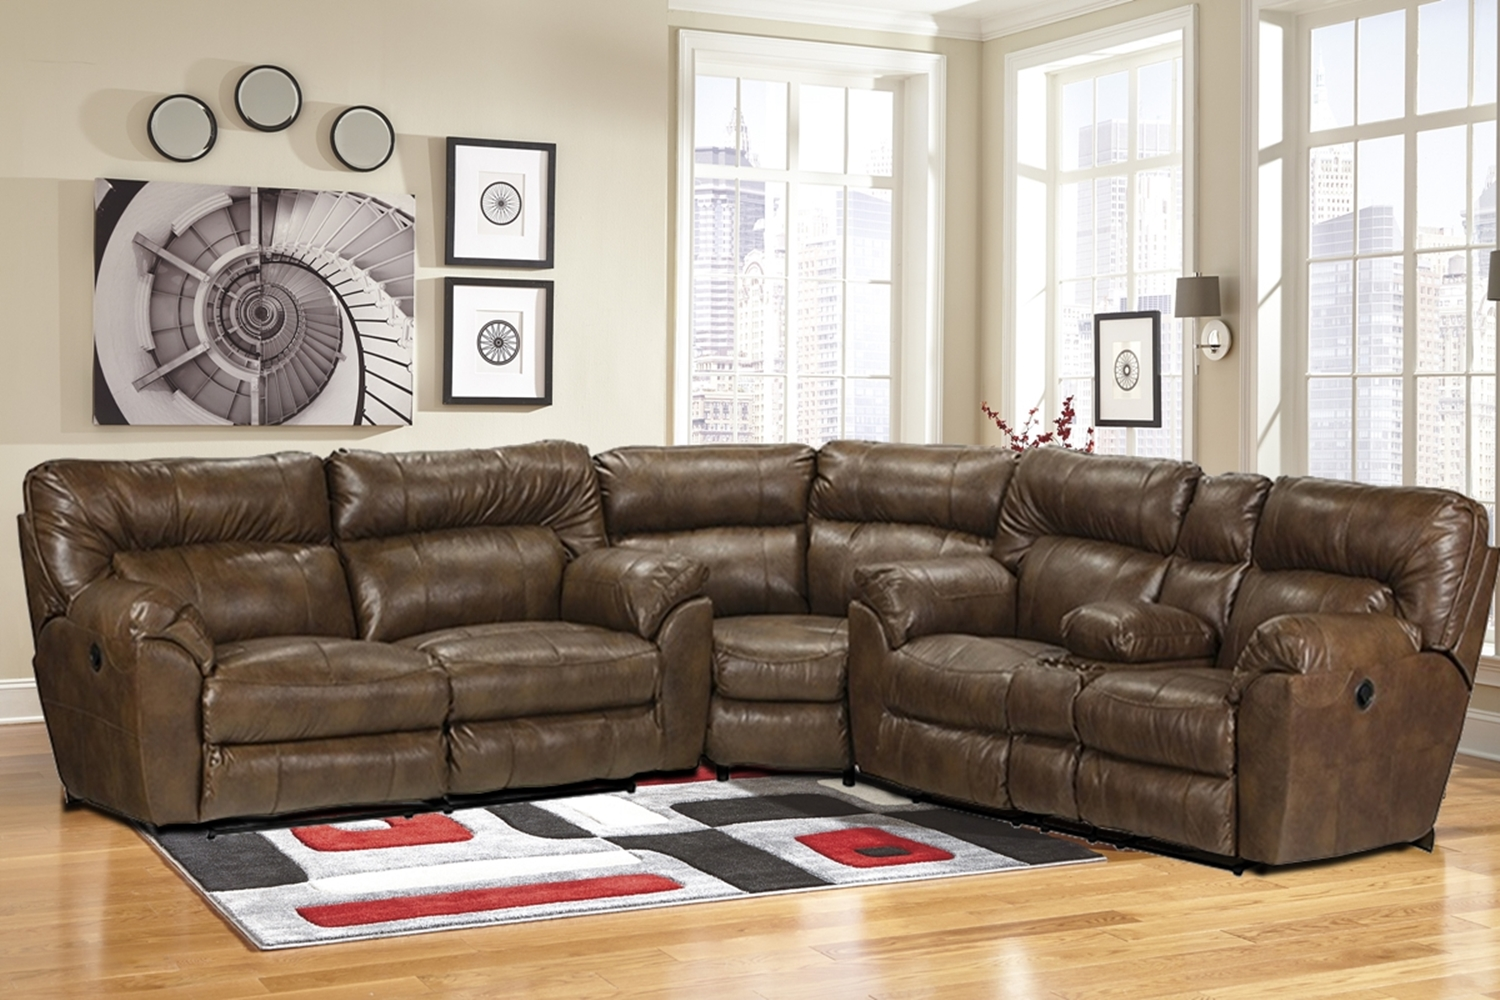 Nolan Chestnut Sectional - Dallas Fort Worth